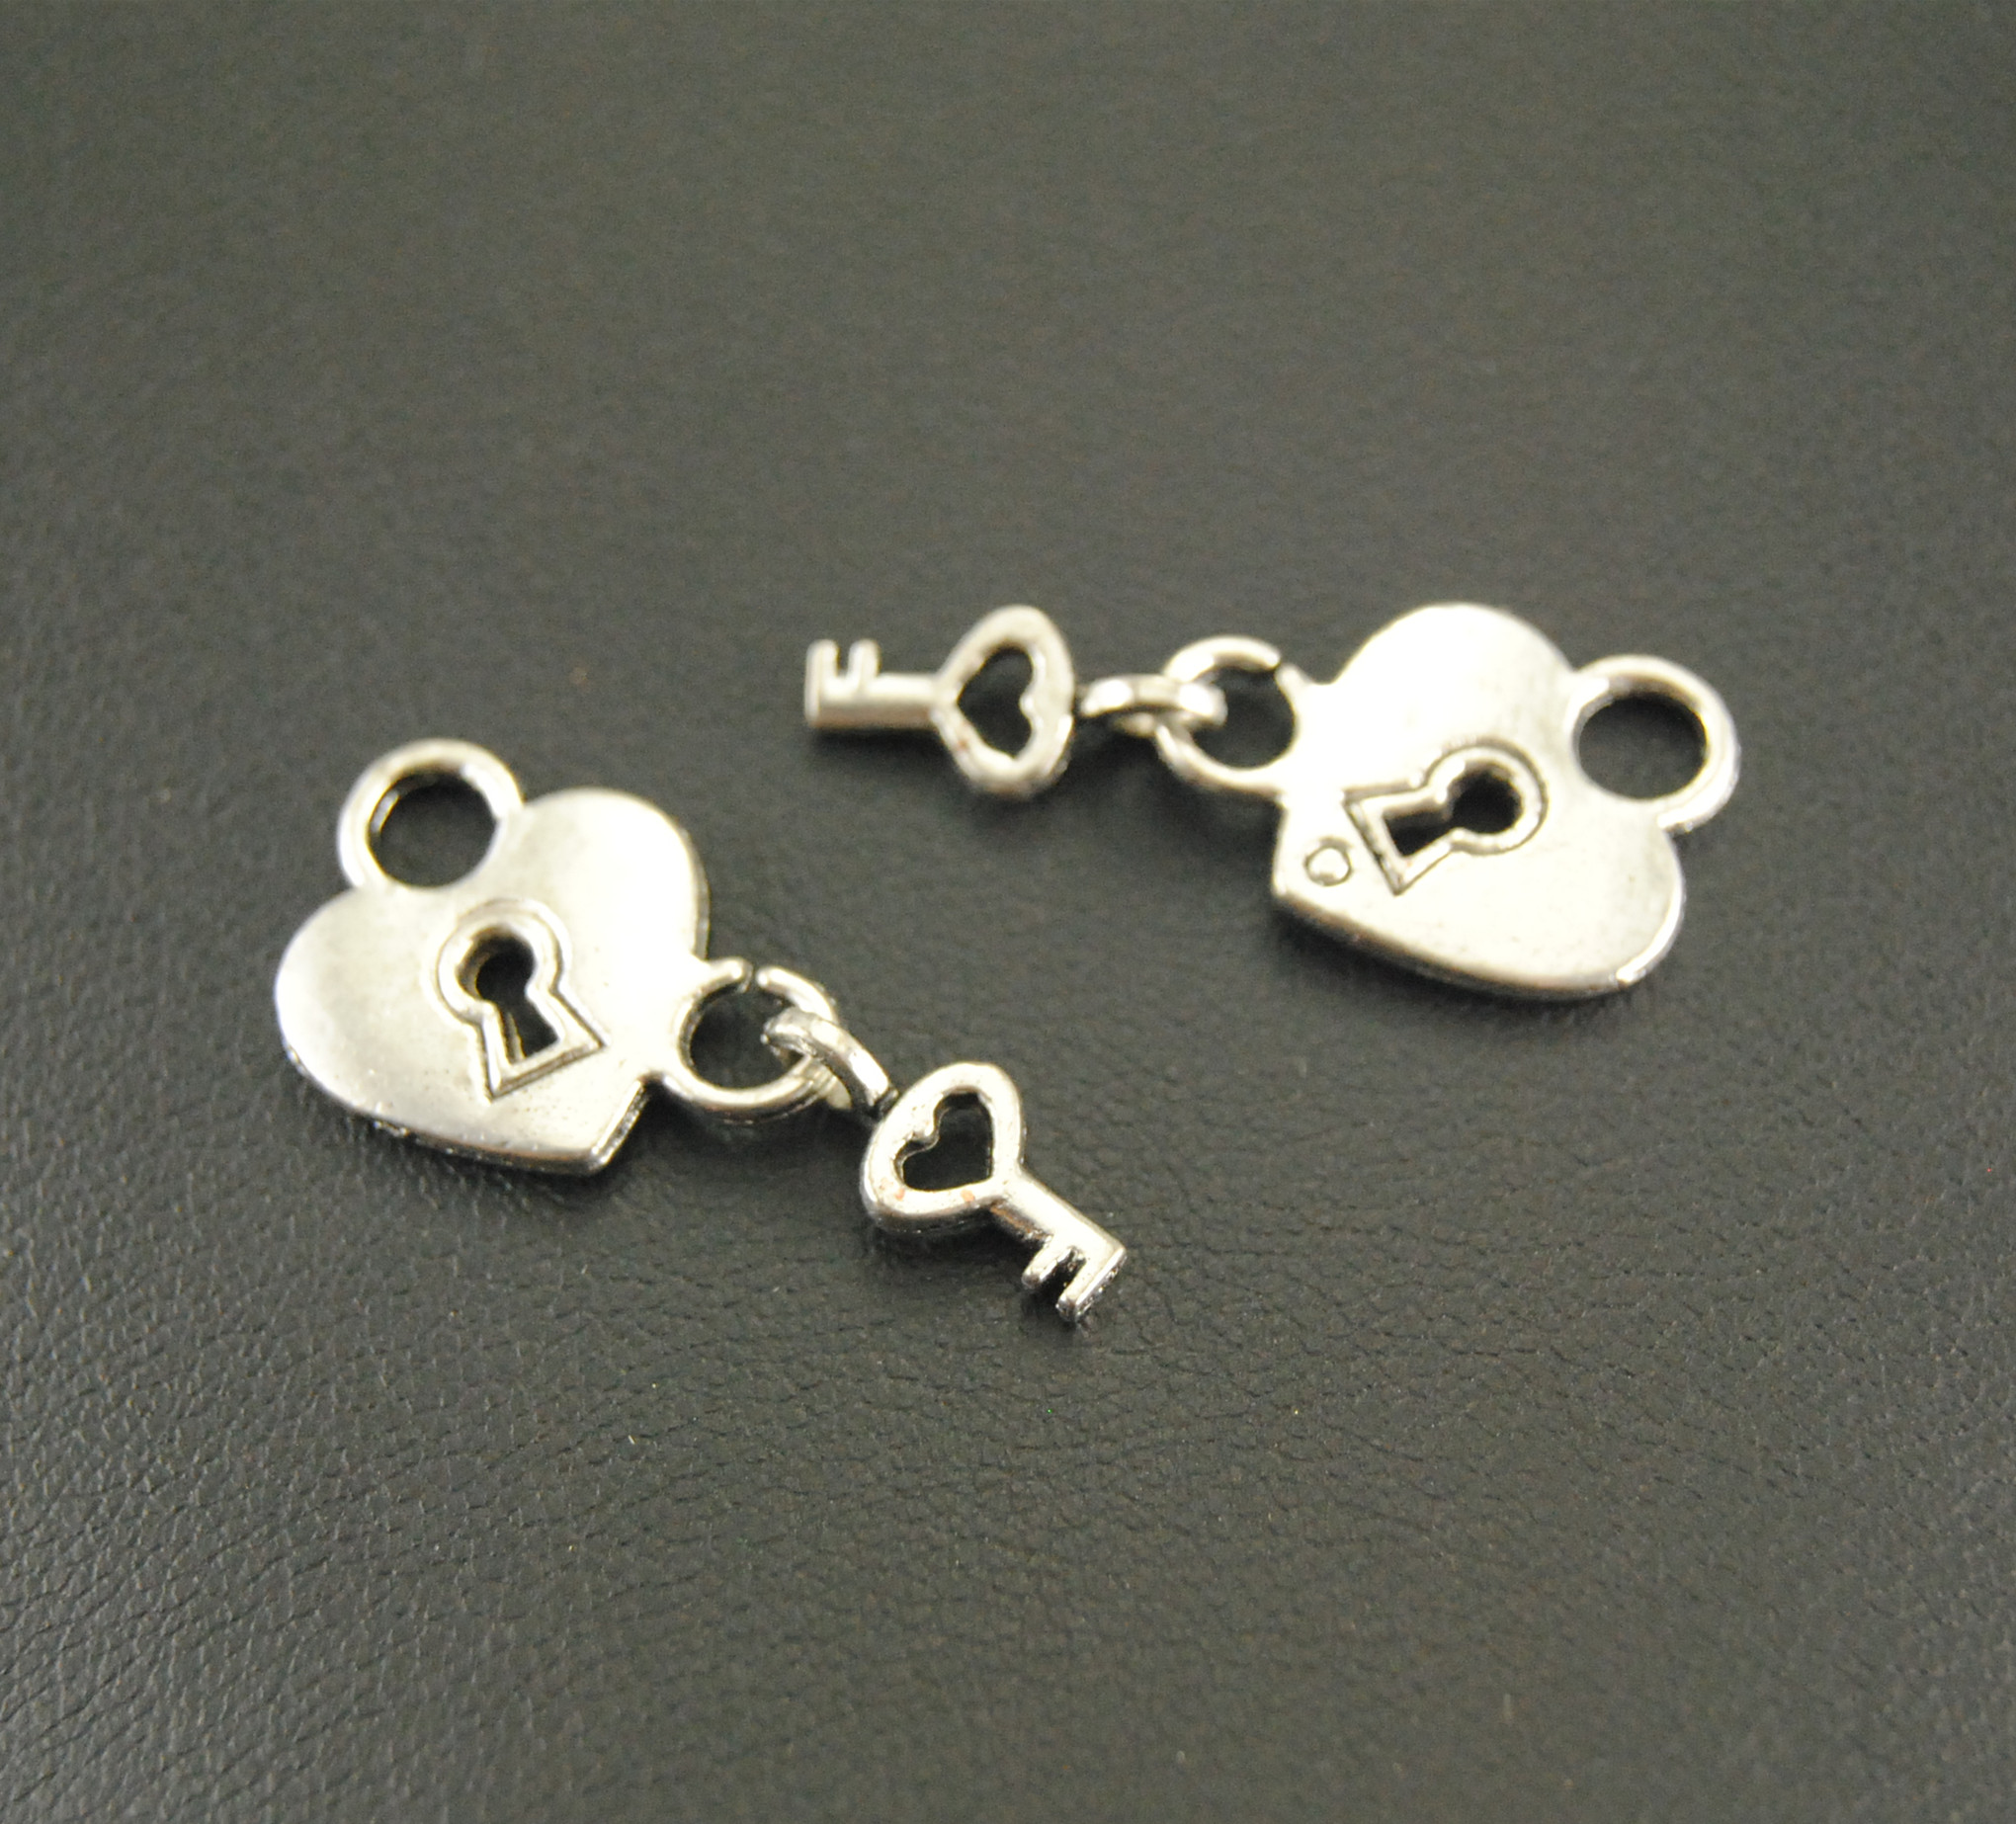 10 Pcs Antique Silver Heart Lock And Key Charm Bracelet Necklace Jewelry Making Handmade DIY A592(China)